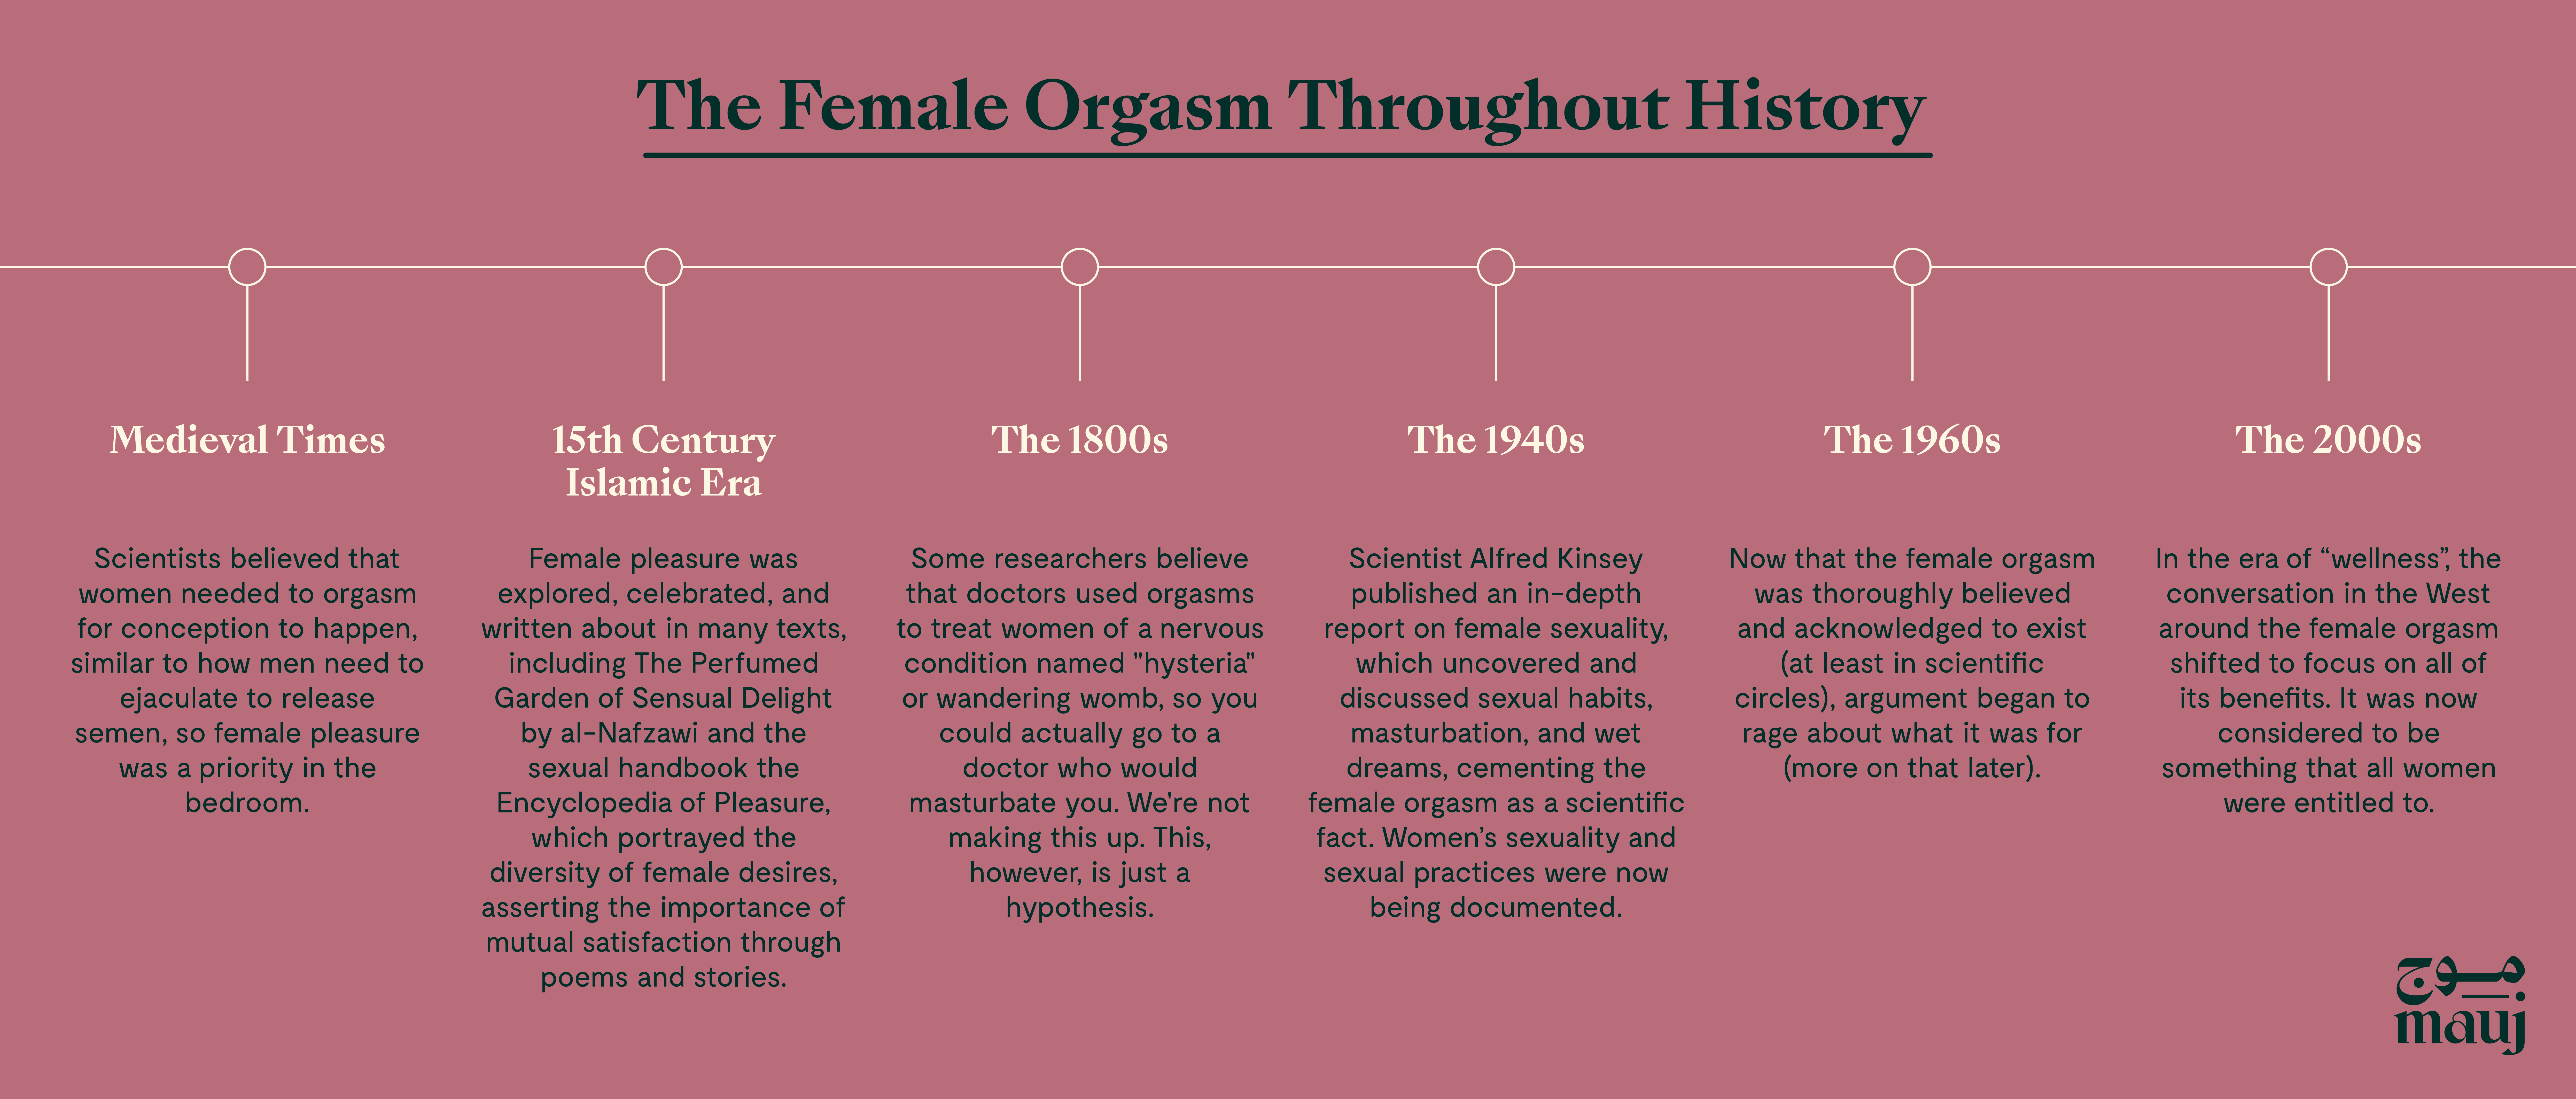 The Female Orgasm Throughout History